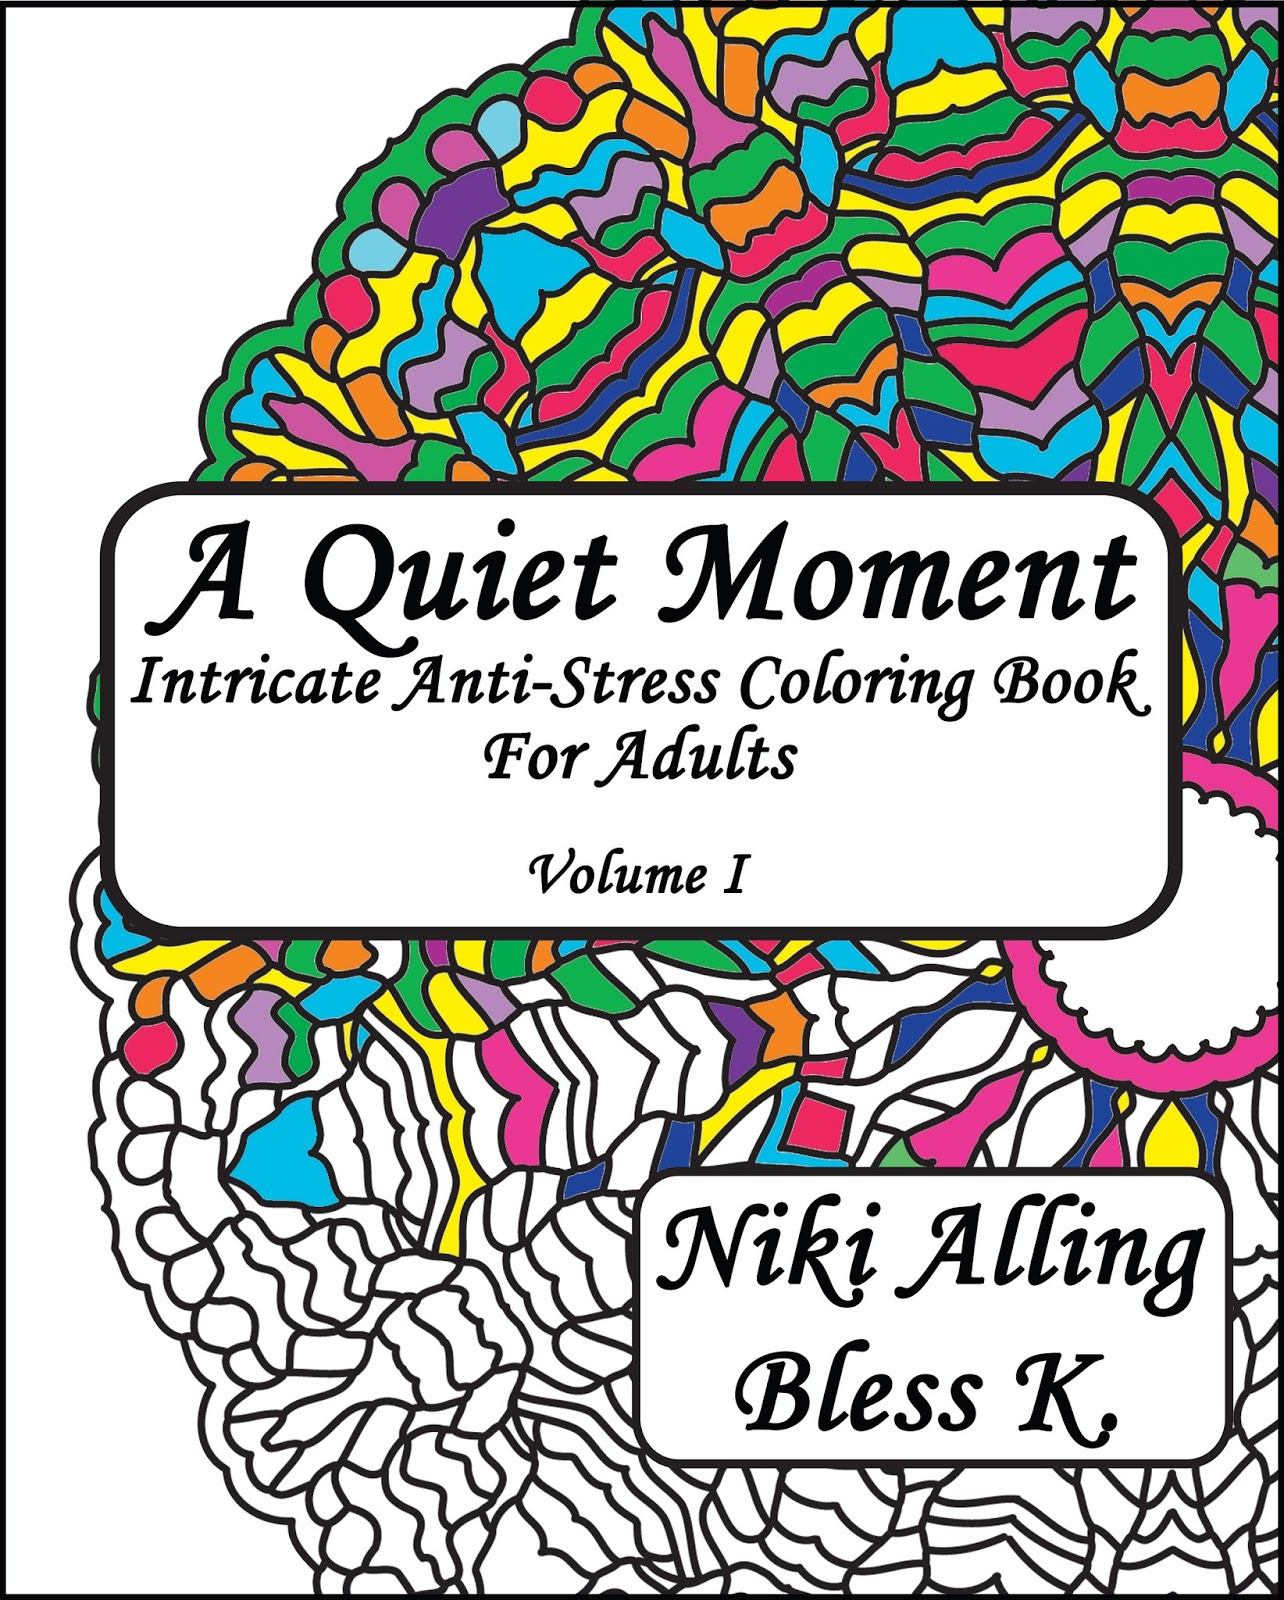 A Quiet Moment Available At Amazon